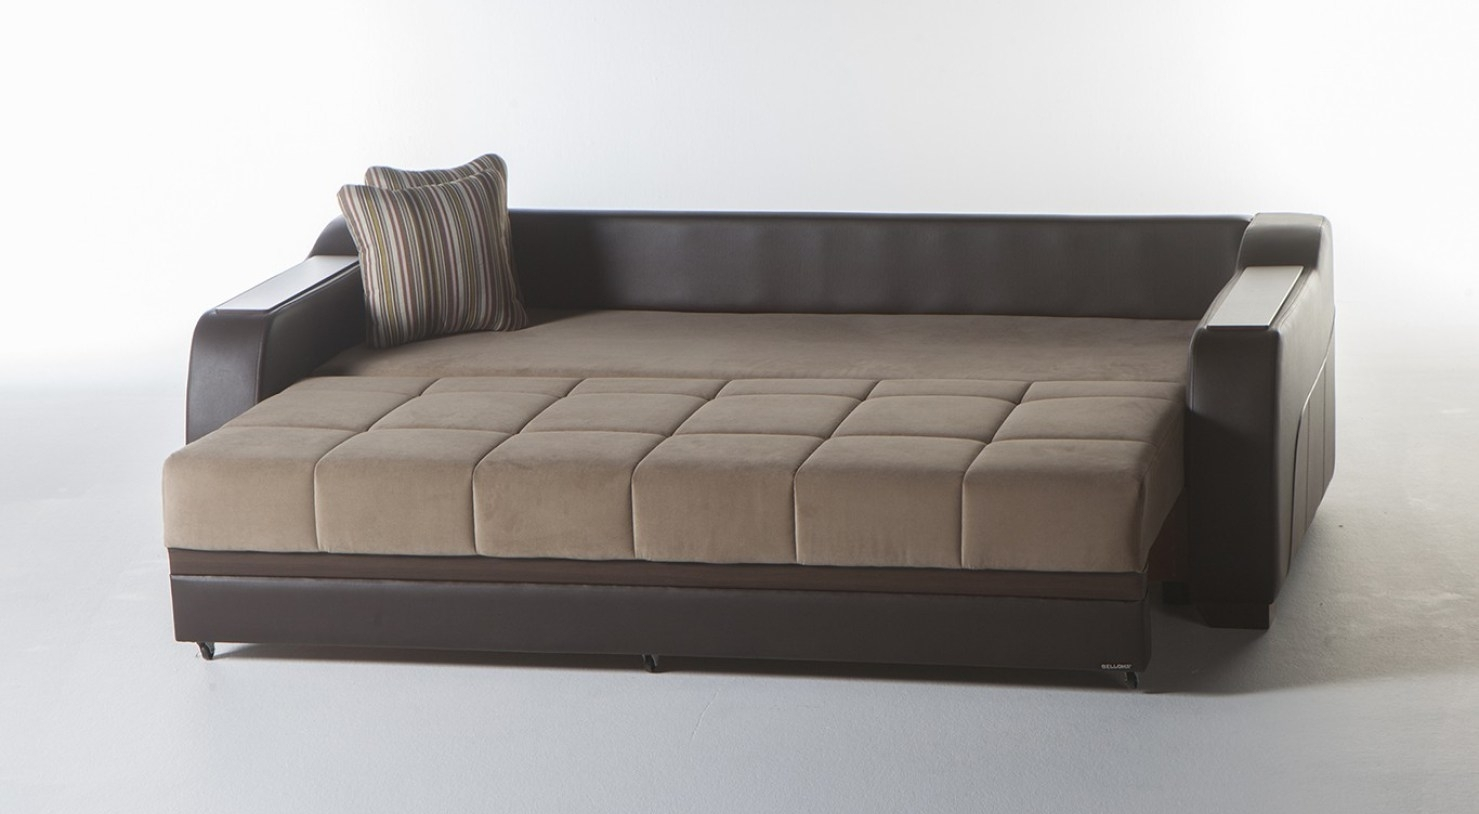 Hideaway Sofa Bed Philippines | Catosfera Intended For Sectional Sofas In Philippines (Image 4 of 10)